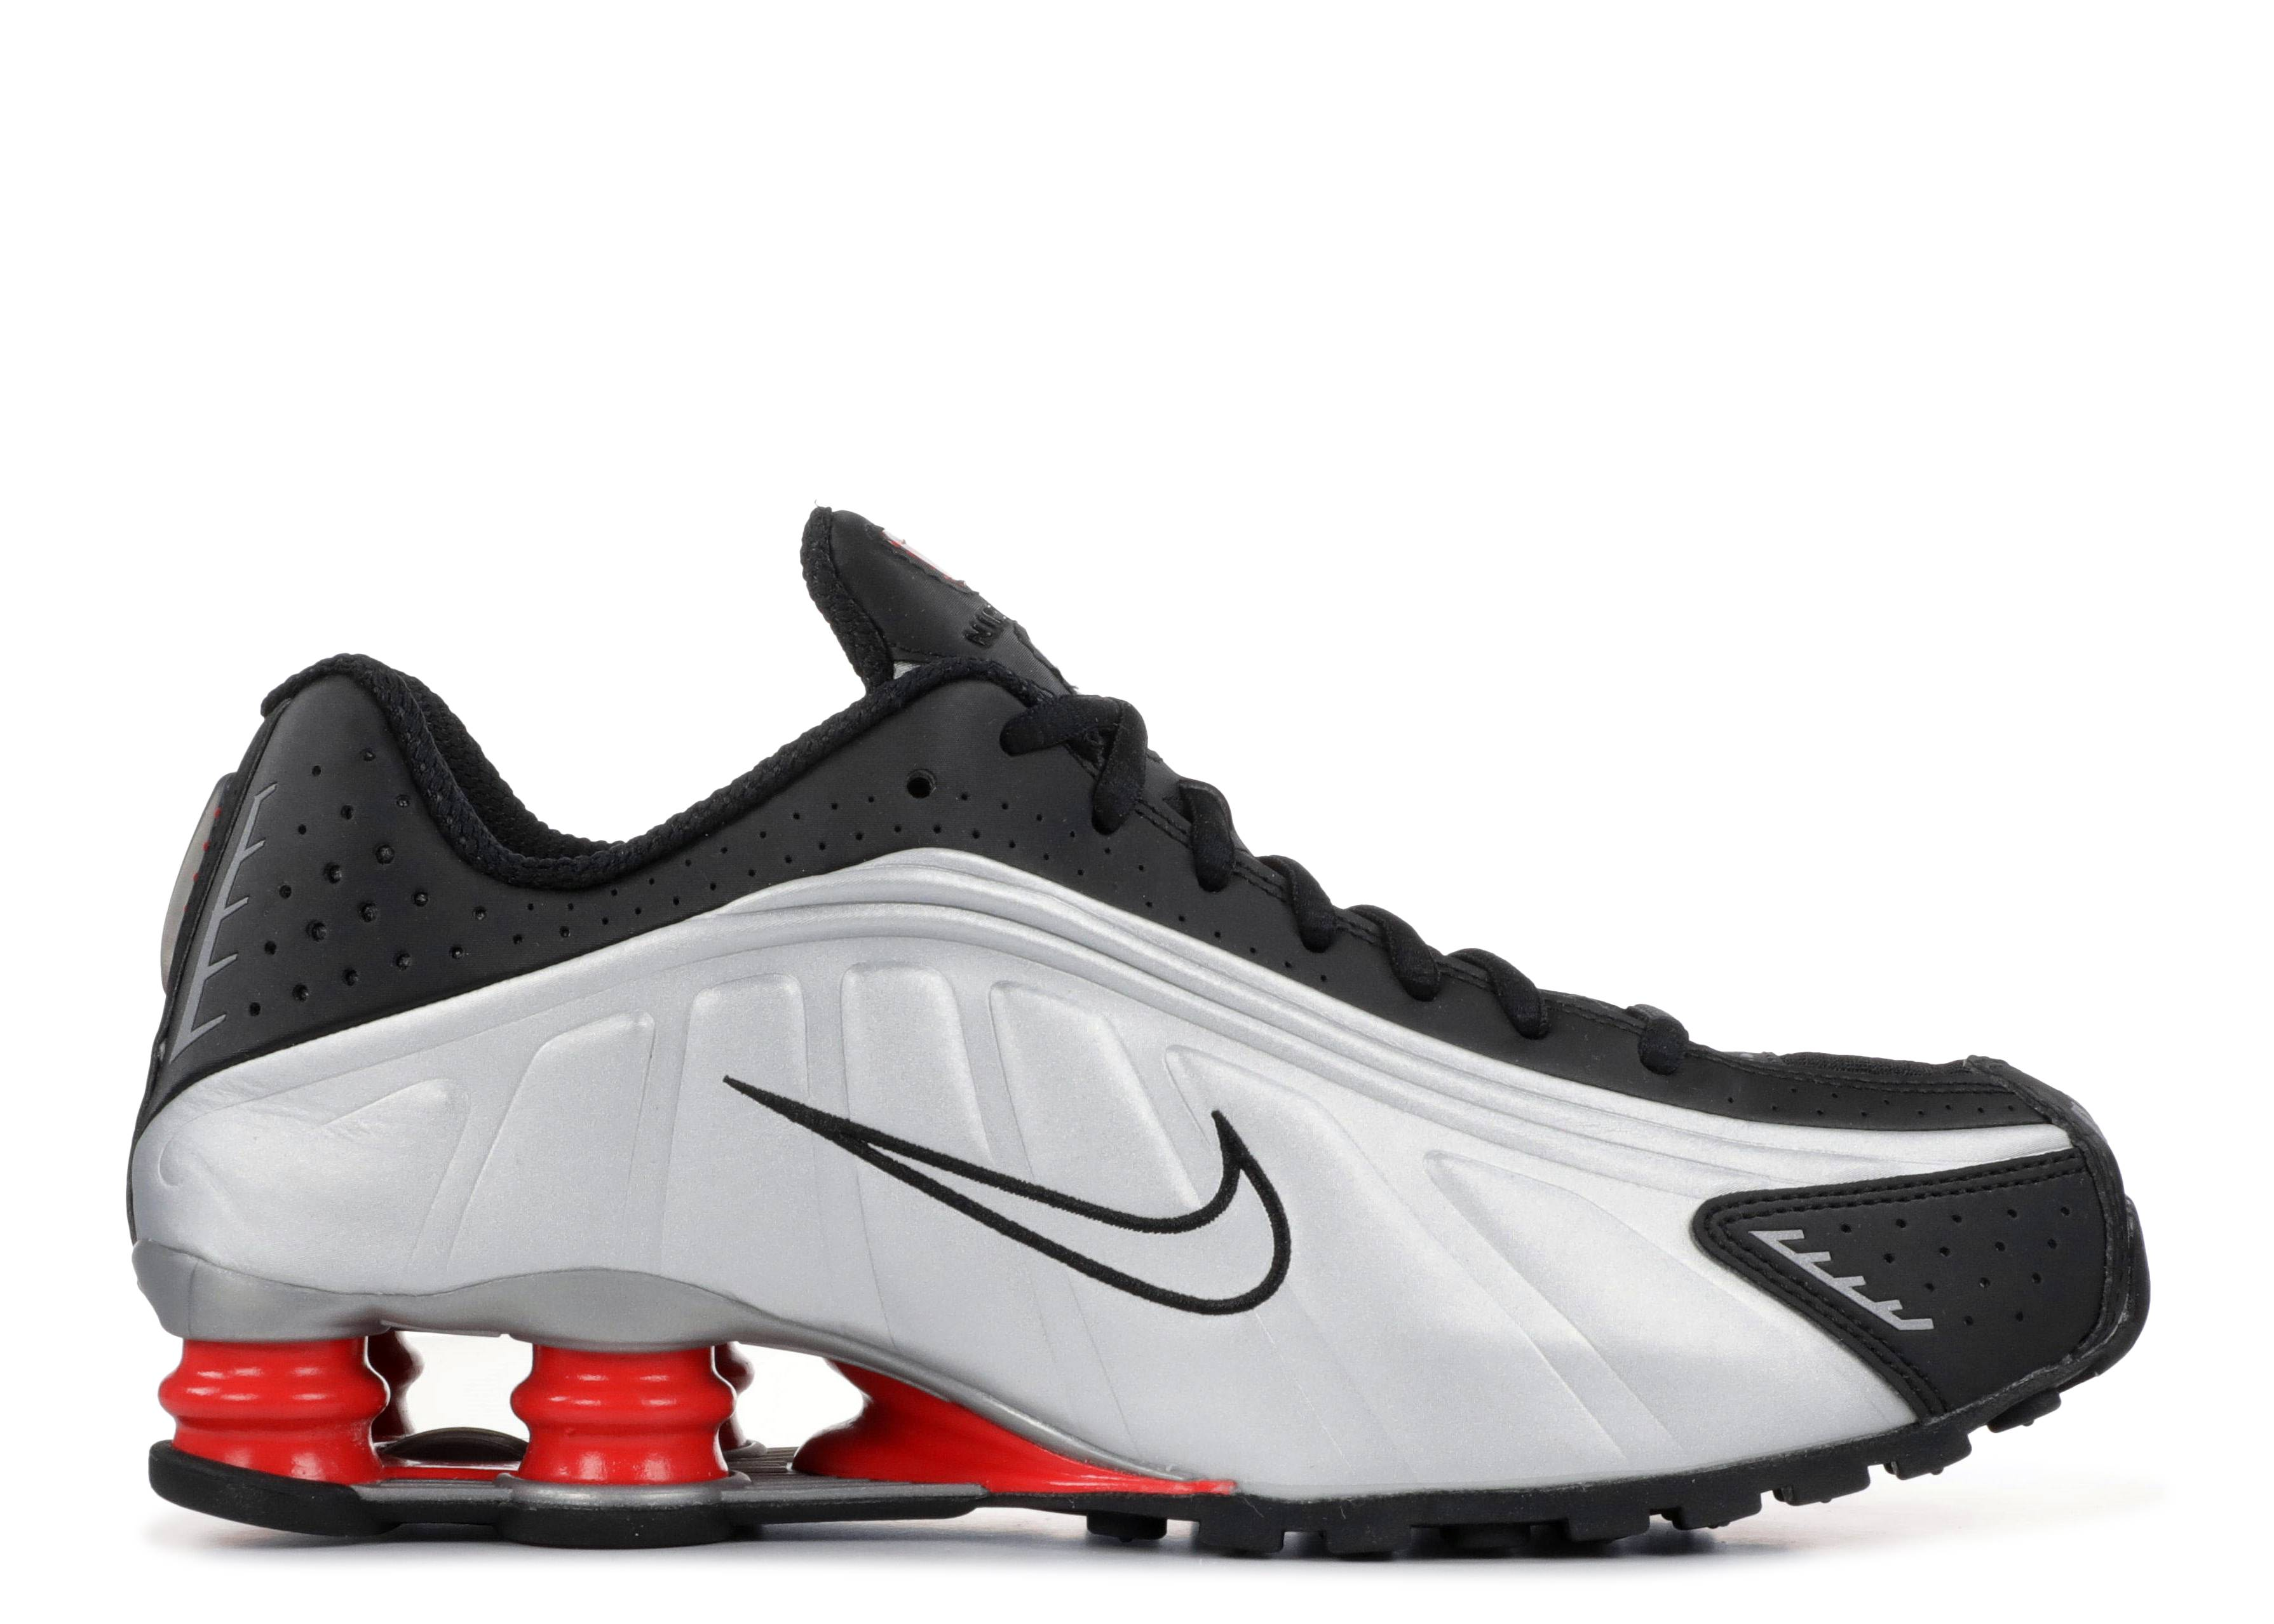 separation shoes 656b9 e2d1e Nike Shox R4